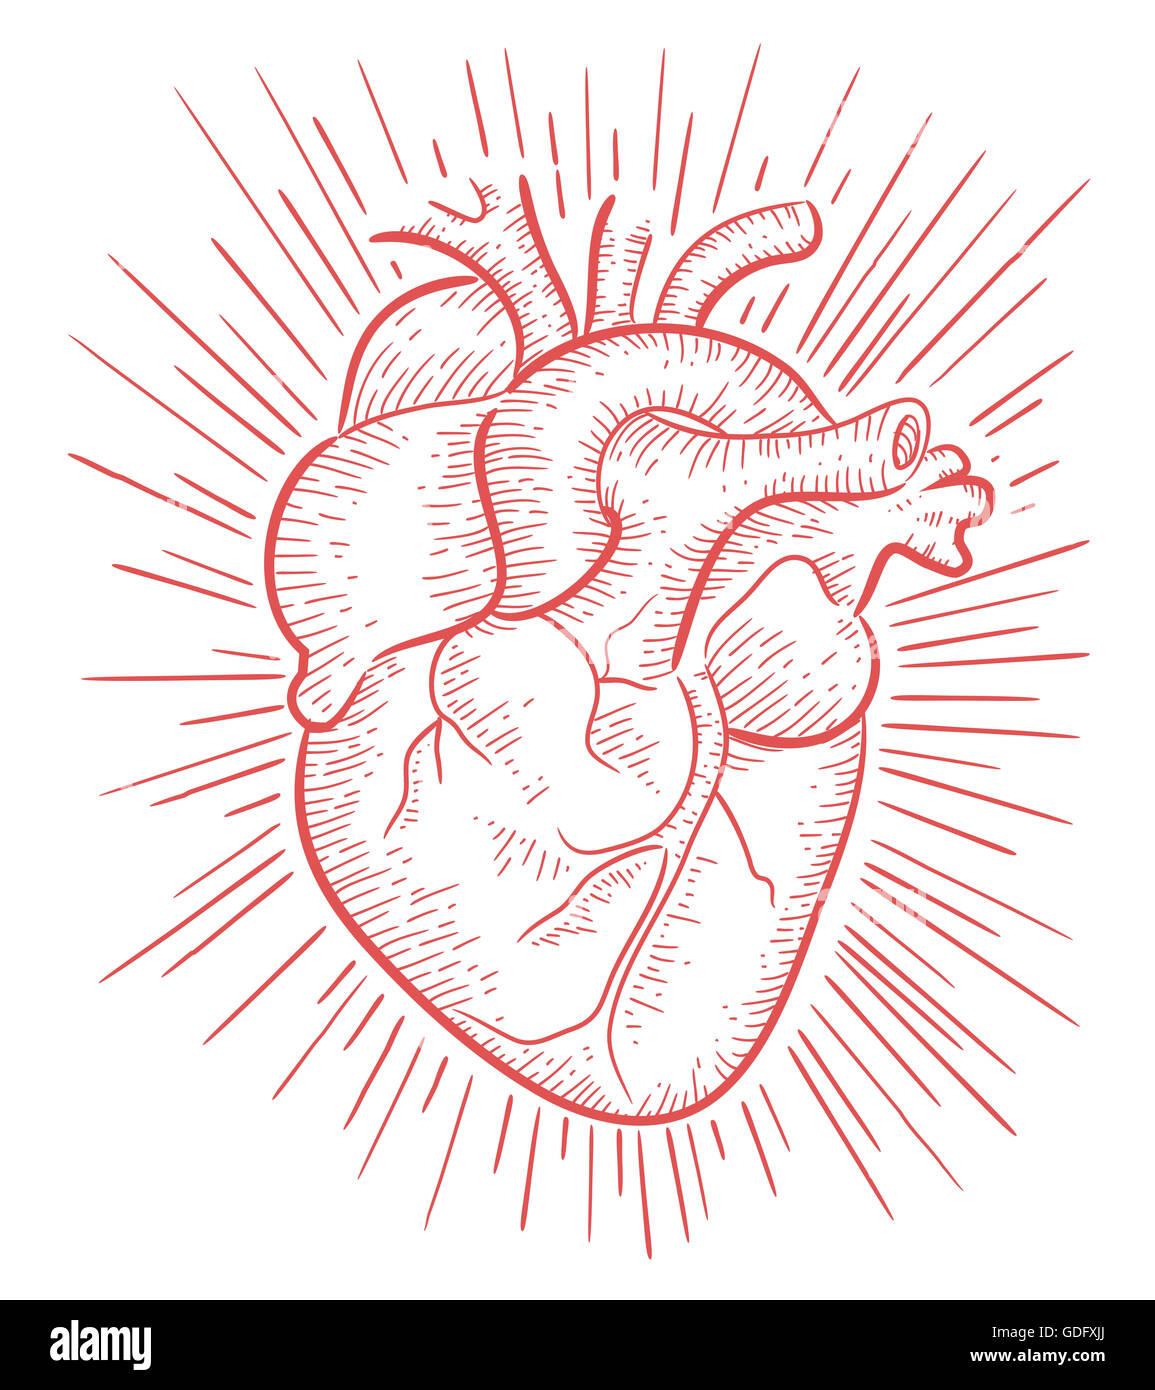 Hand Drawn Illustration Or Drawing Of A Human Heart Stock Photo